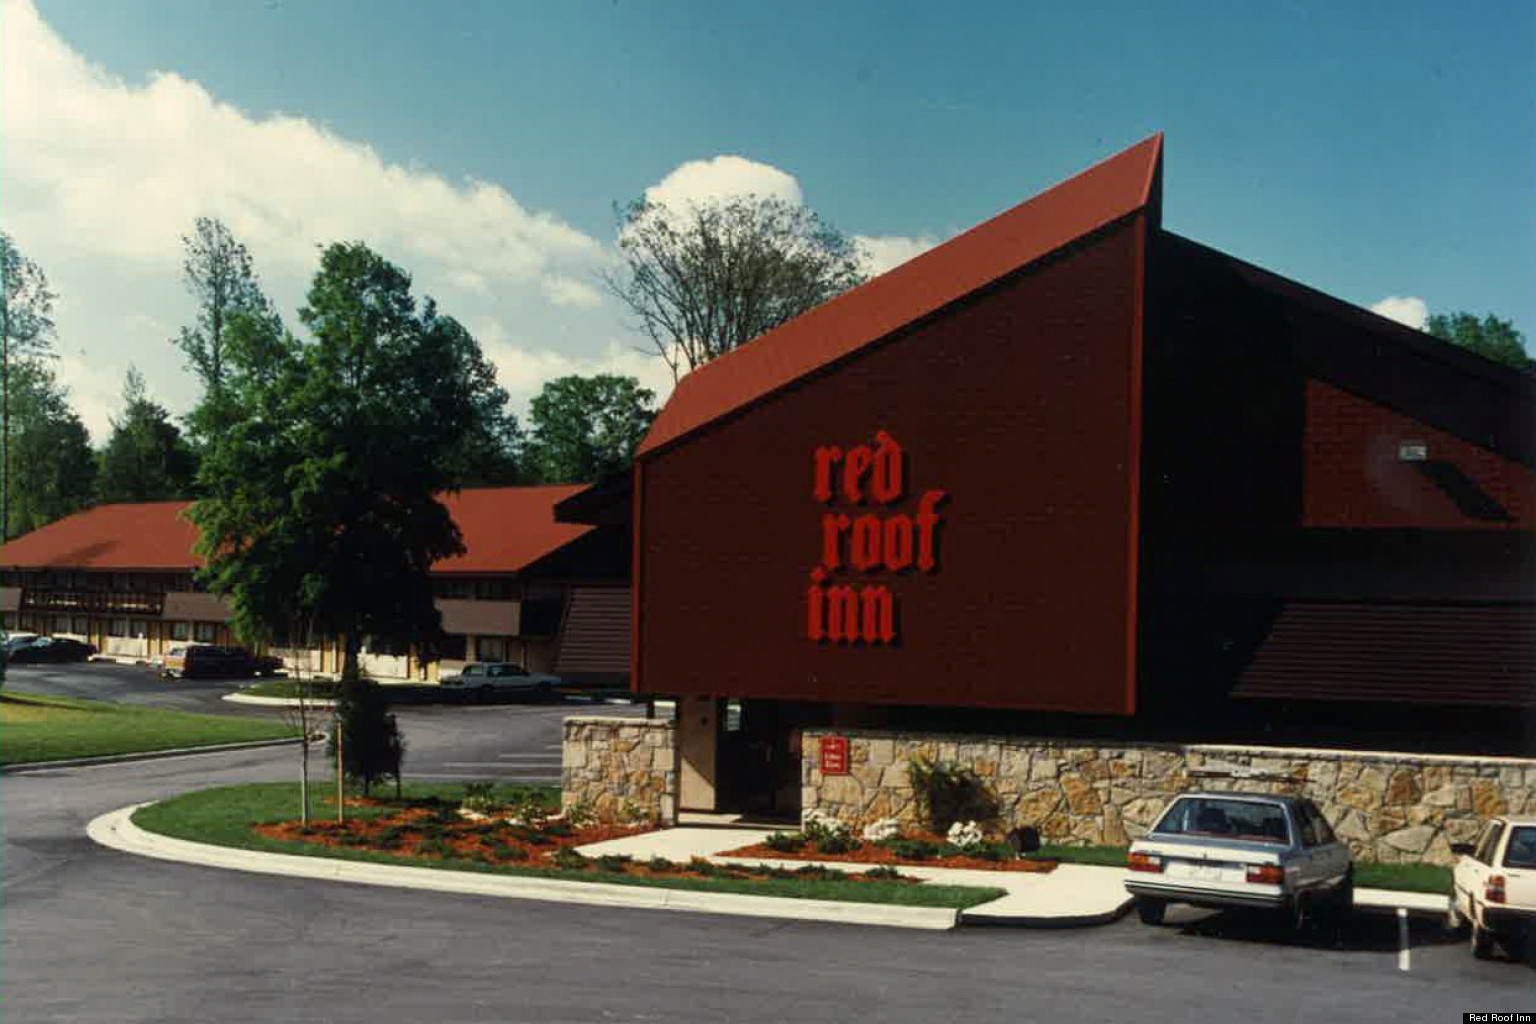 Red Roof Inn 40th Anniversary A Look Back At The Historic